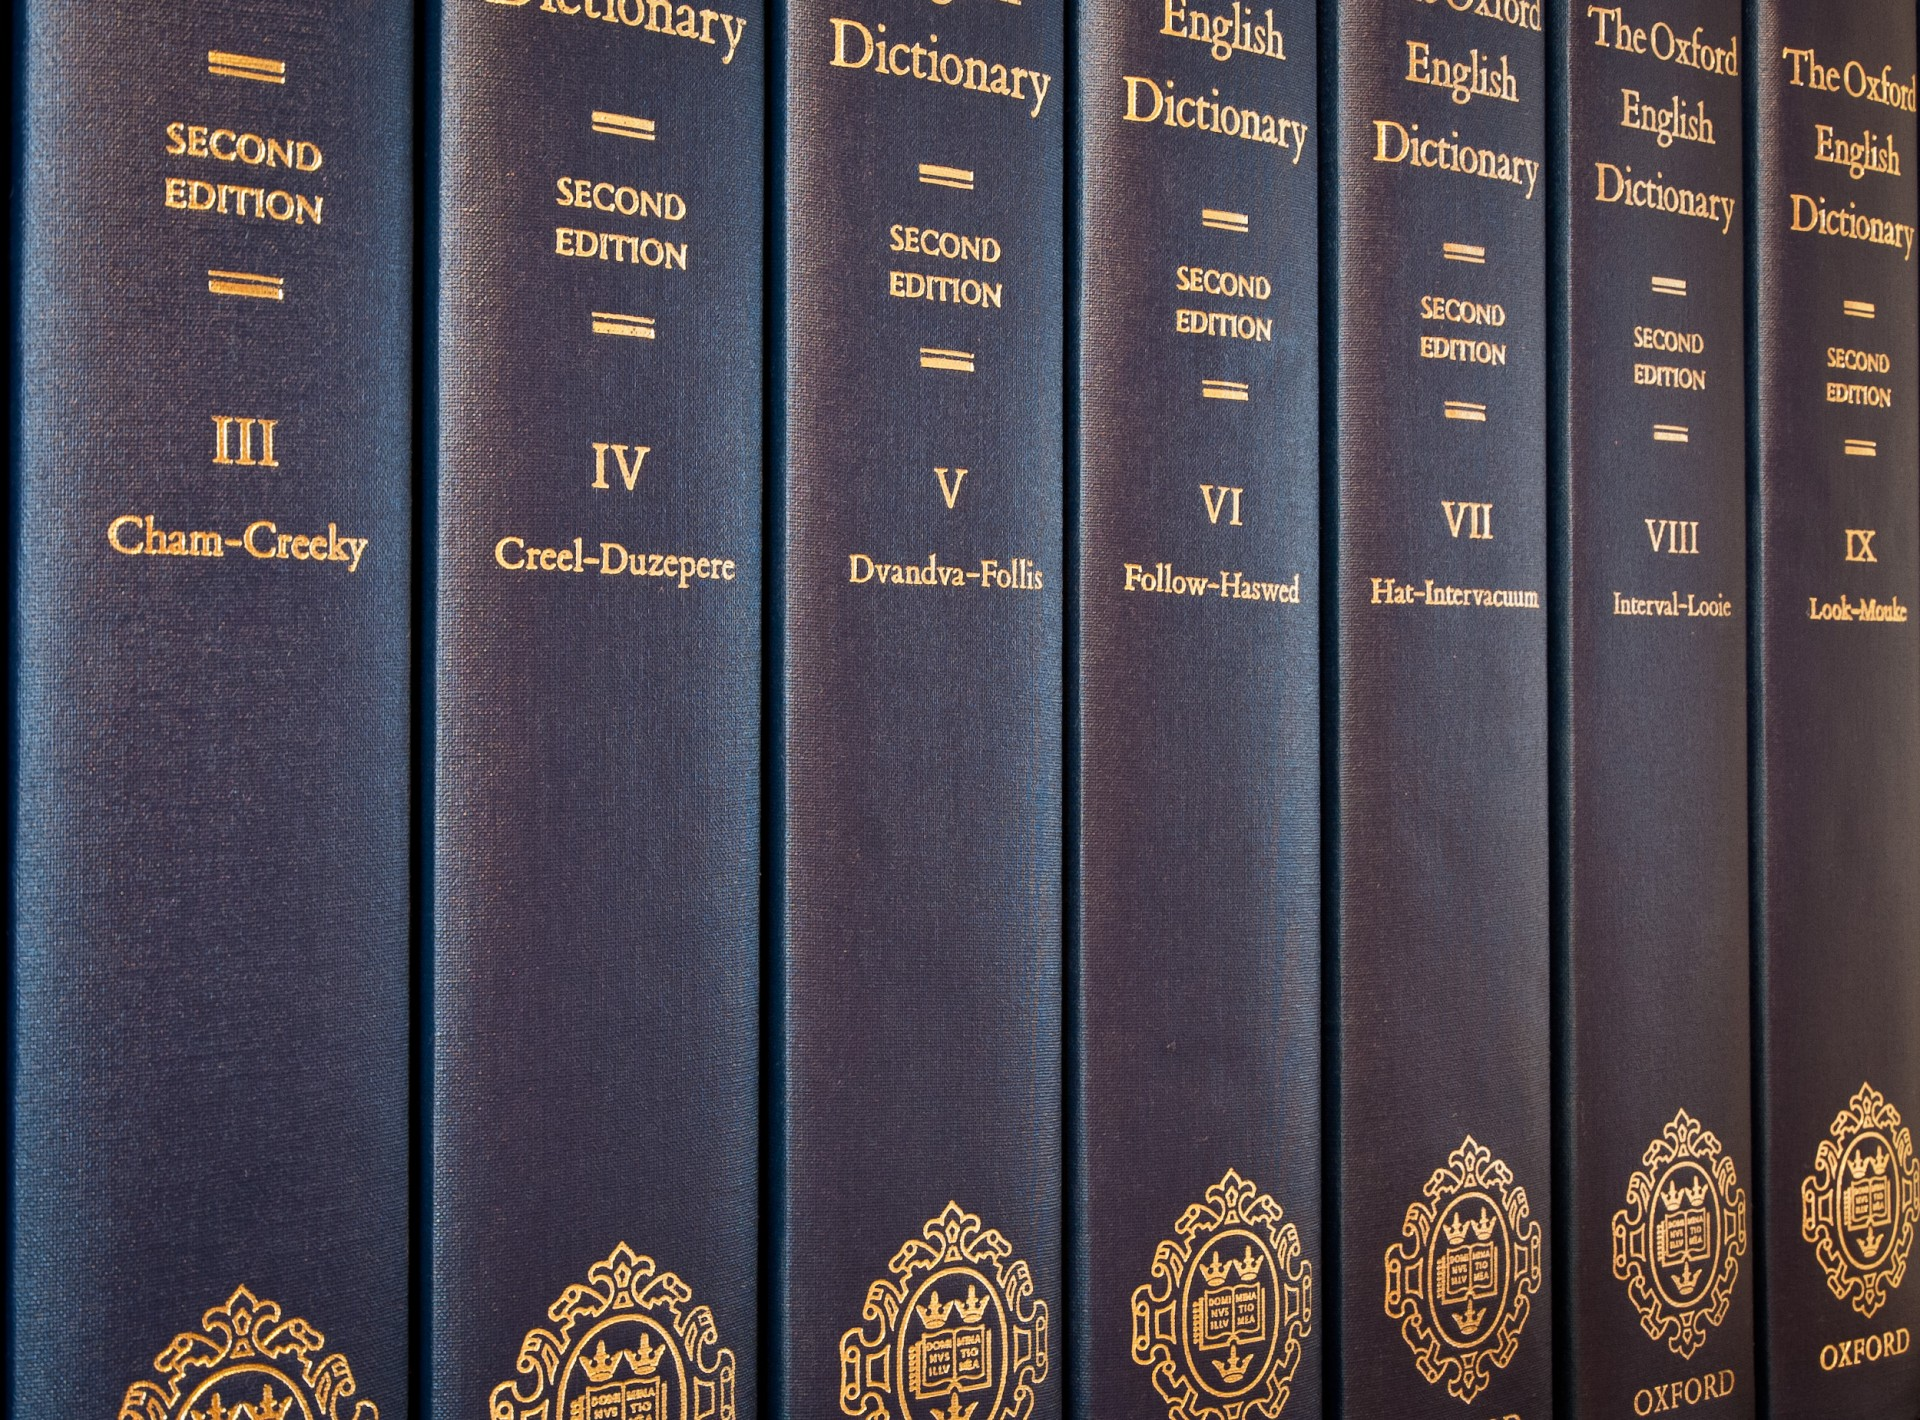 024 Oed2 Volumes Manual For Writers Of Researchs Theses And Dissertations Magnificent Research Papers A Amazon 9th Edition Pdf 8th 13 1920